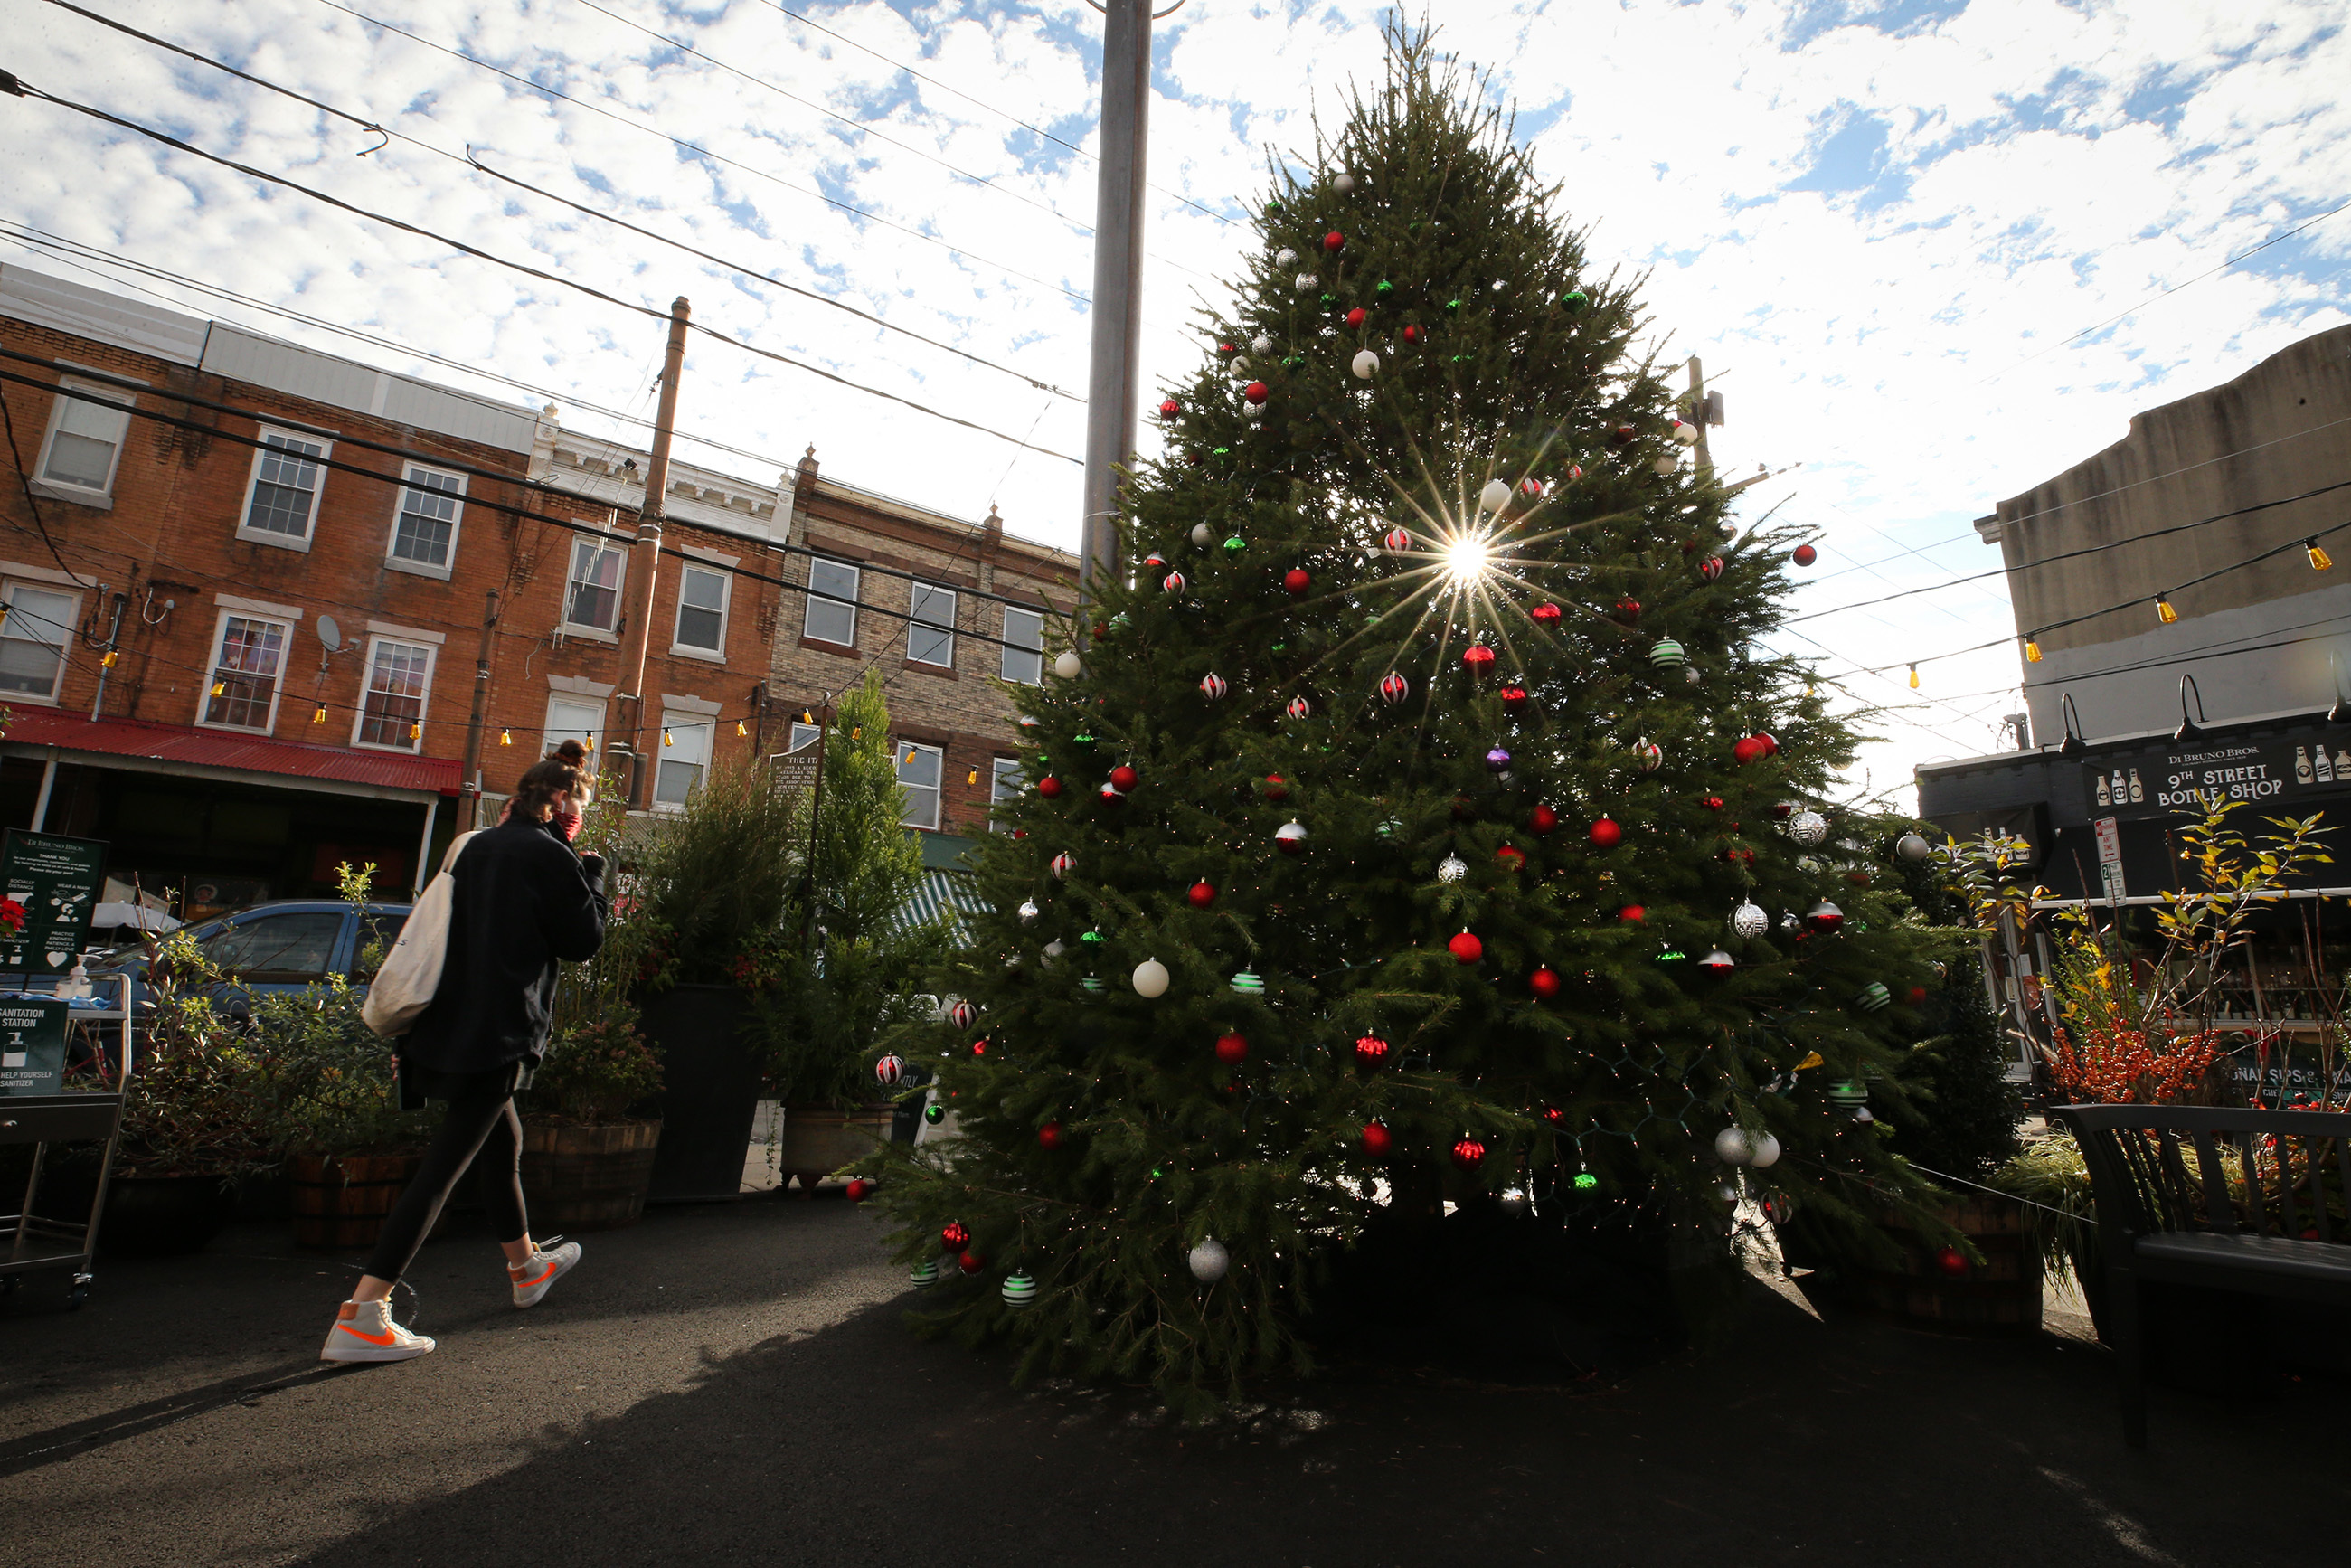 Christmas Events Philadelphia December 2 2021 Christmas Tree Farms Near Philly In Pennsylvania And New Jersey